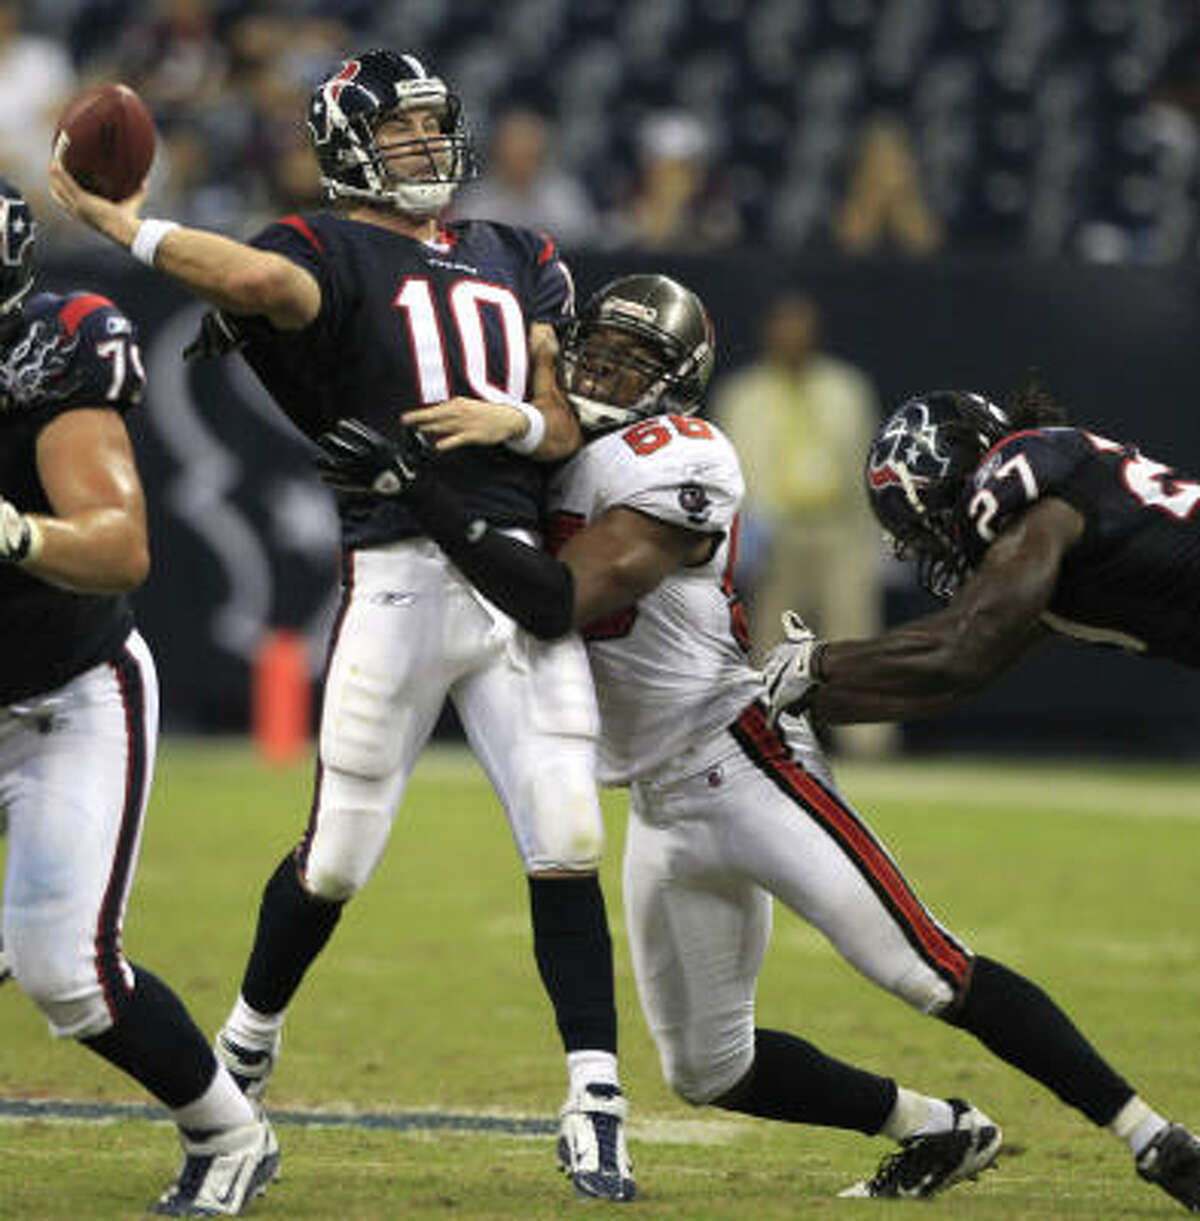 Texans quarterback John David Booty (10) is hit by Buccaneers linebacker Dekoda Watson as he attempts a pass during the fourth quarter.